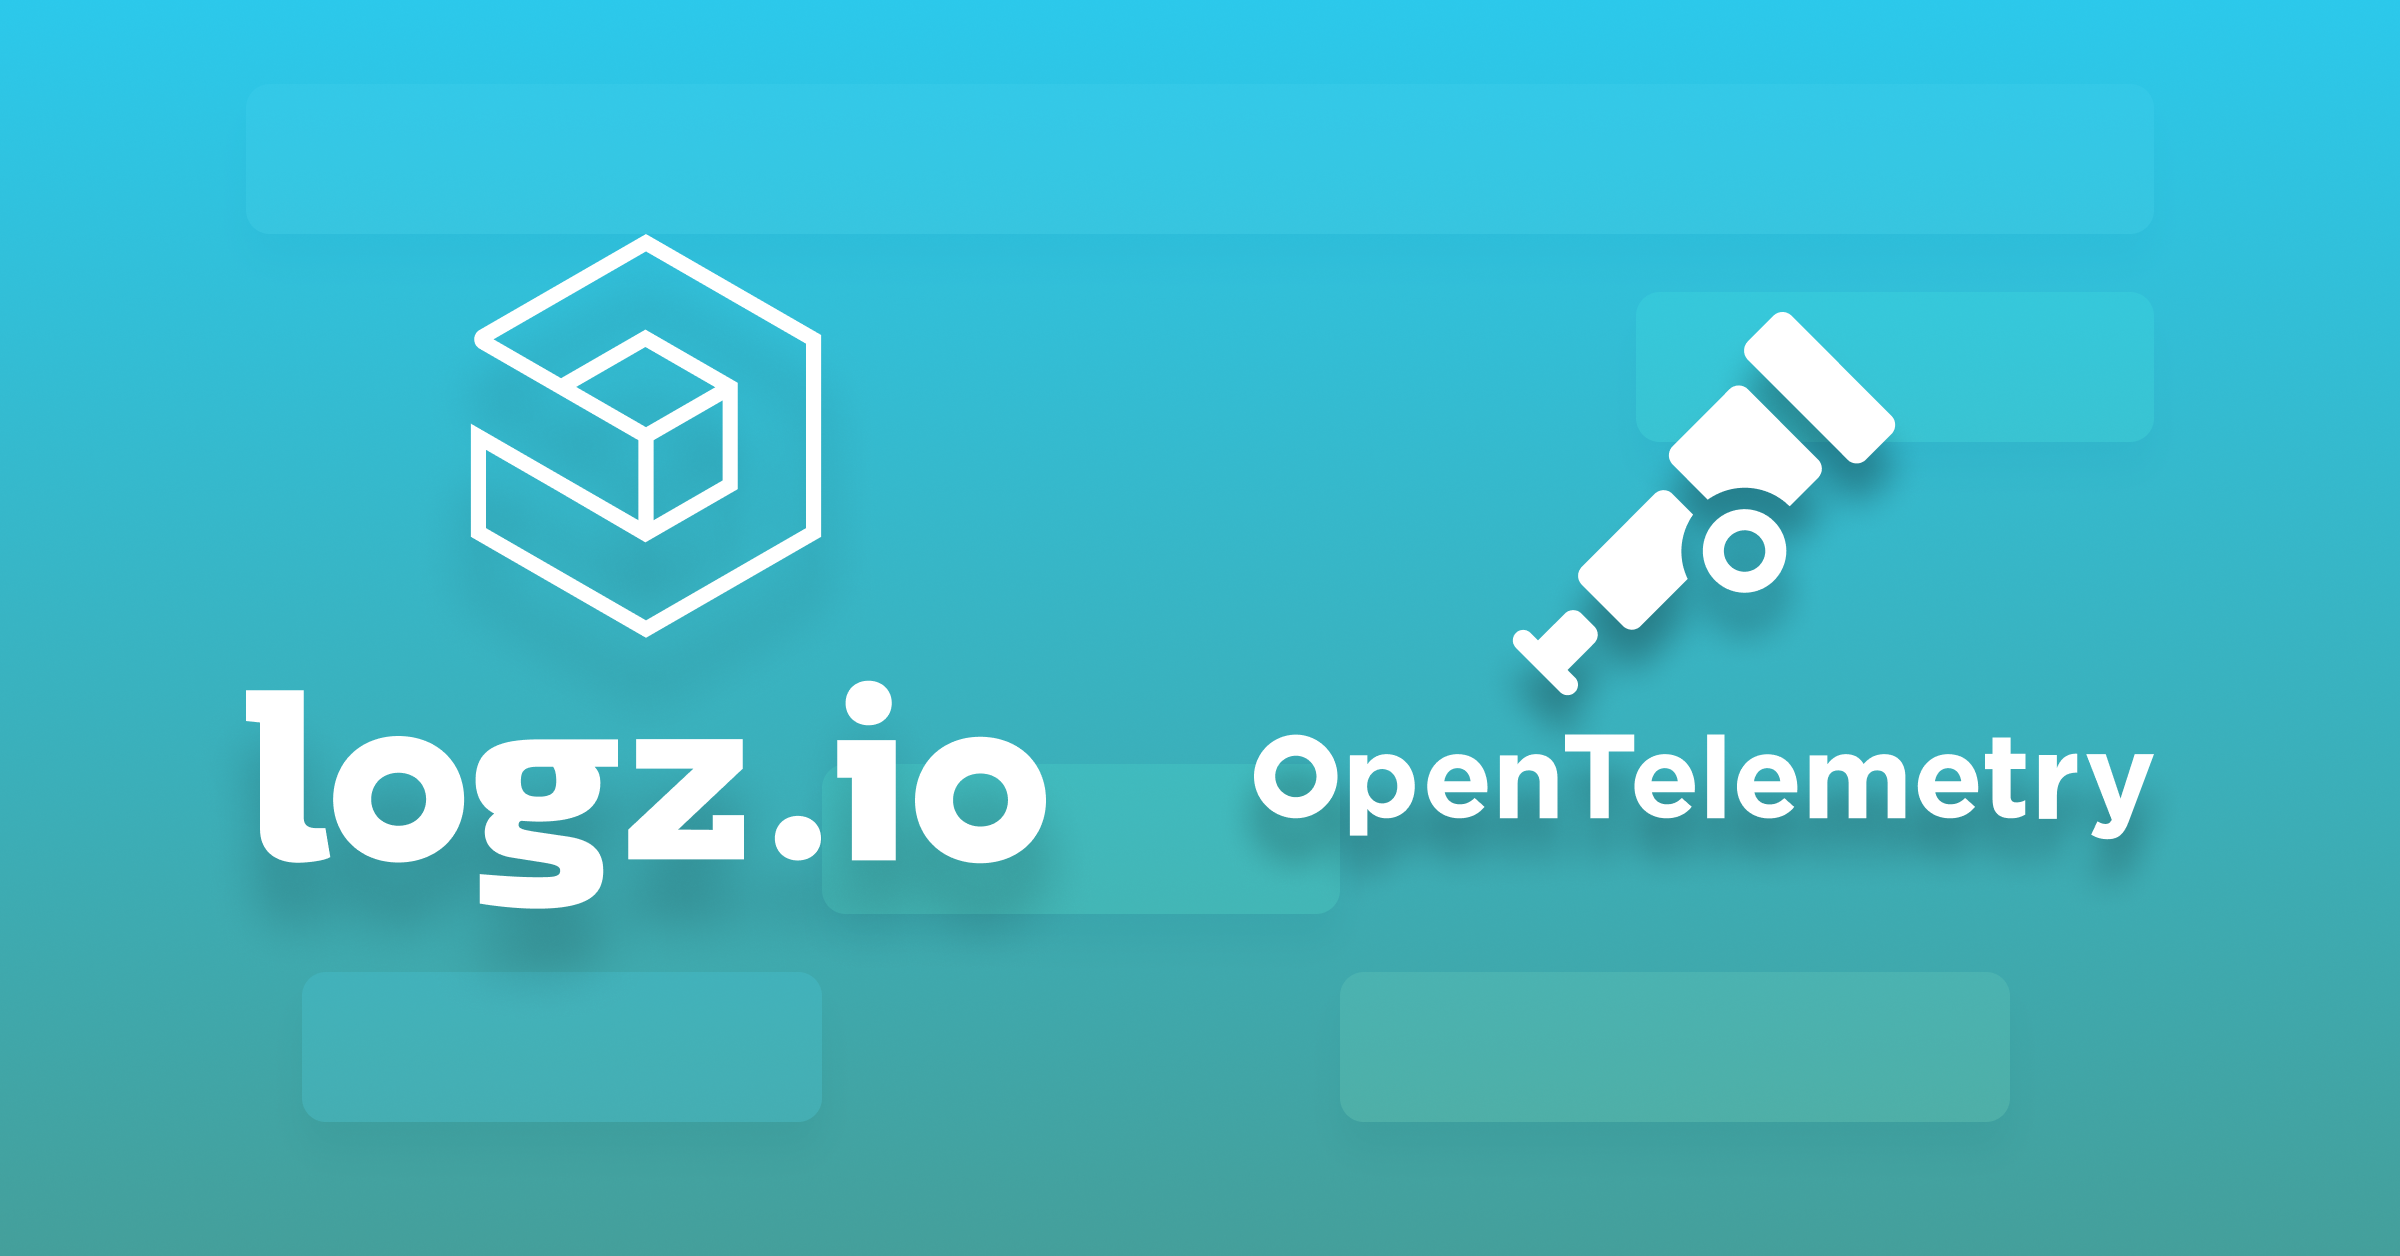 OpenTelemetry v1.0 sets a new standard for traces and empowers Logz.io